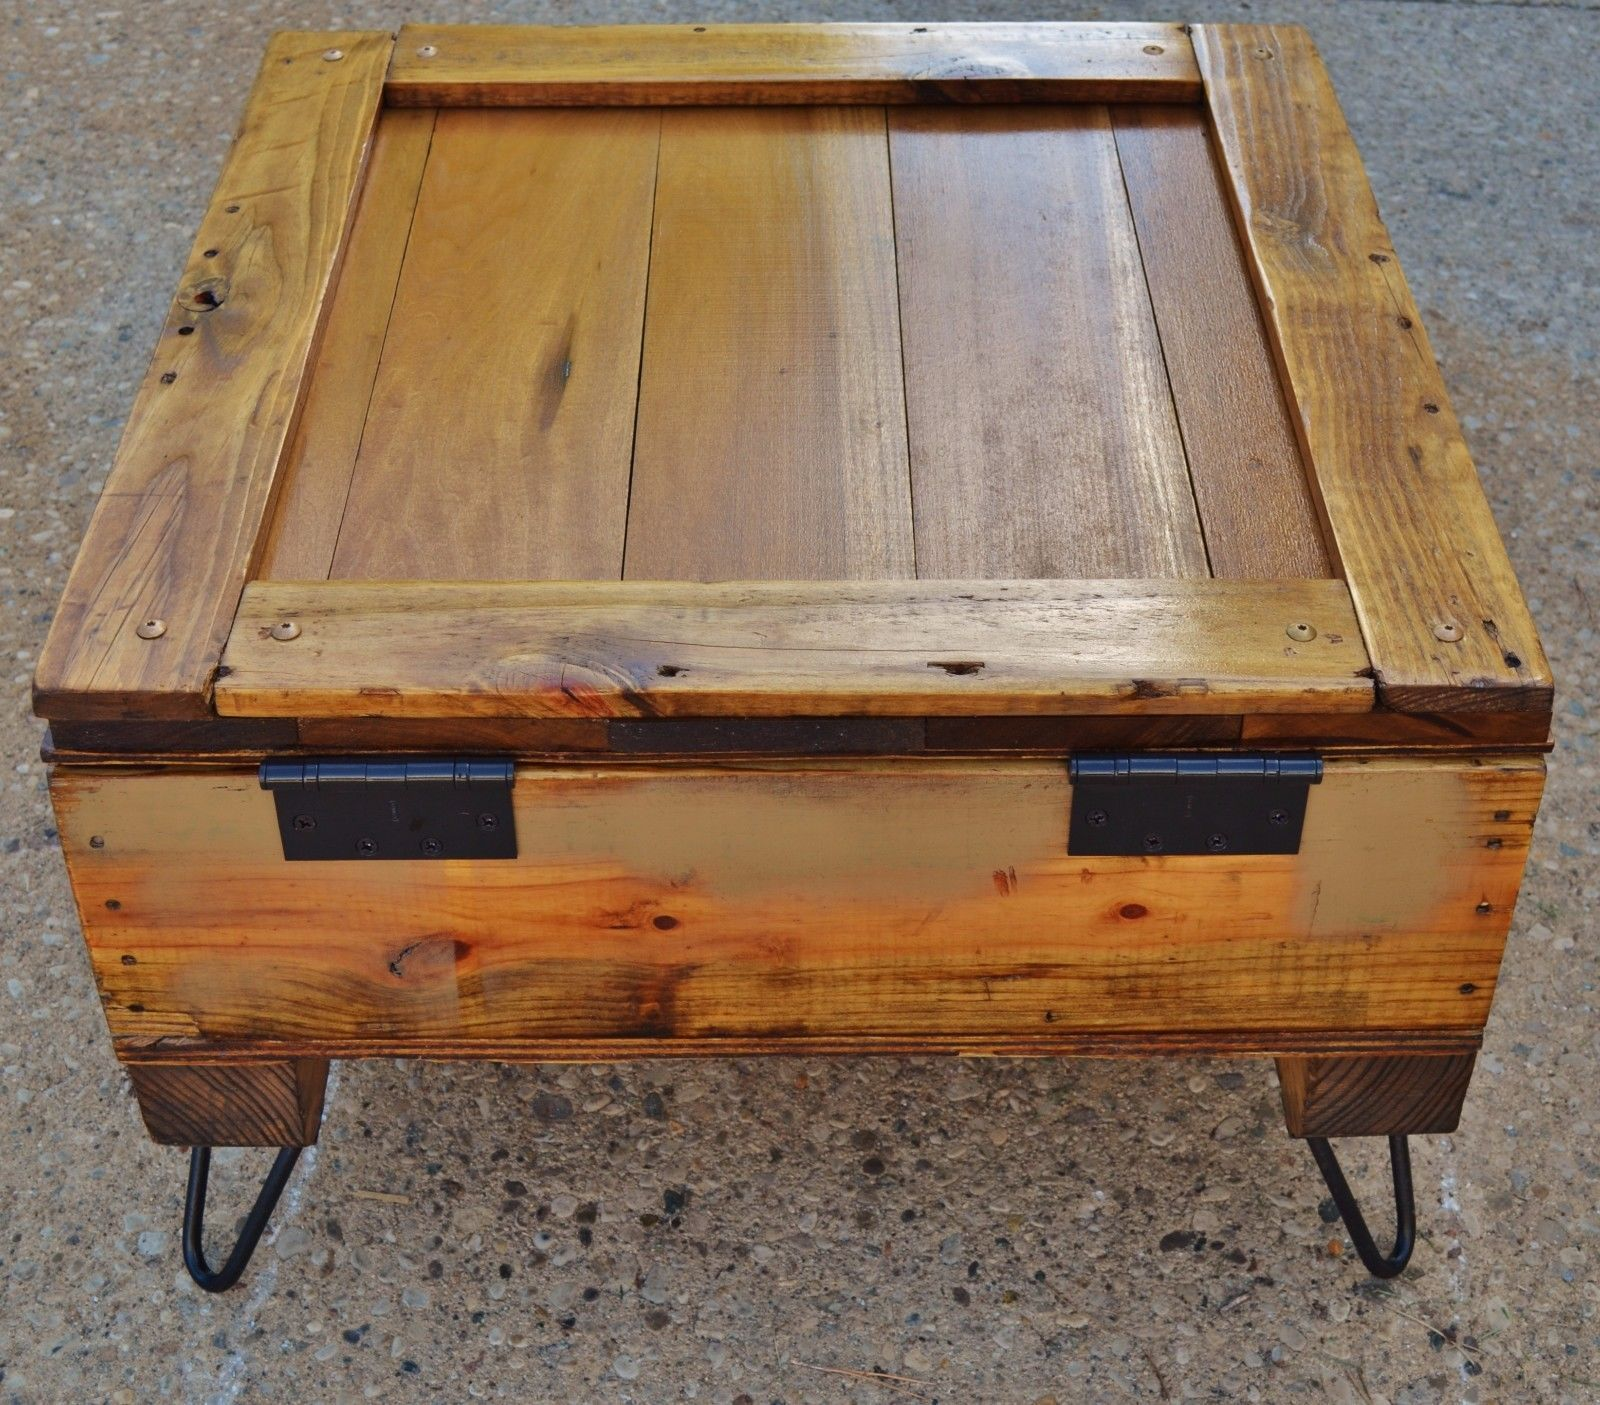 repurposed upcycled shipping crate rustic coffee table storage home garden furniture tables